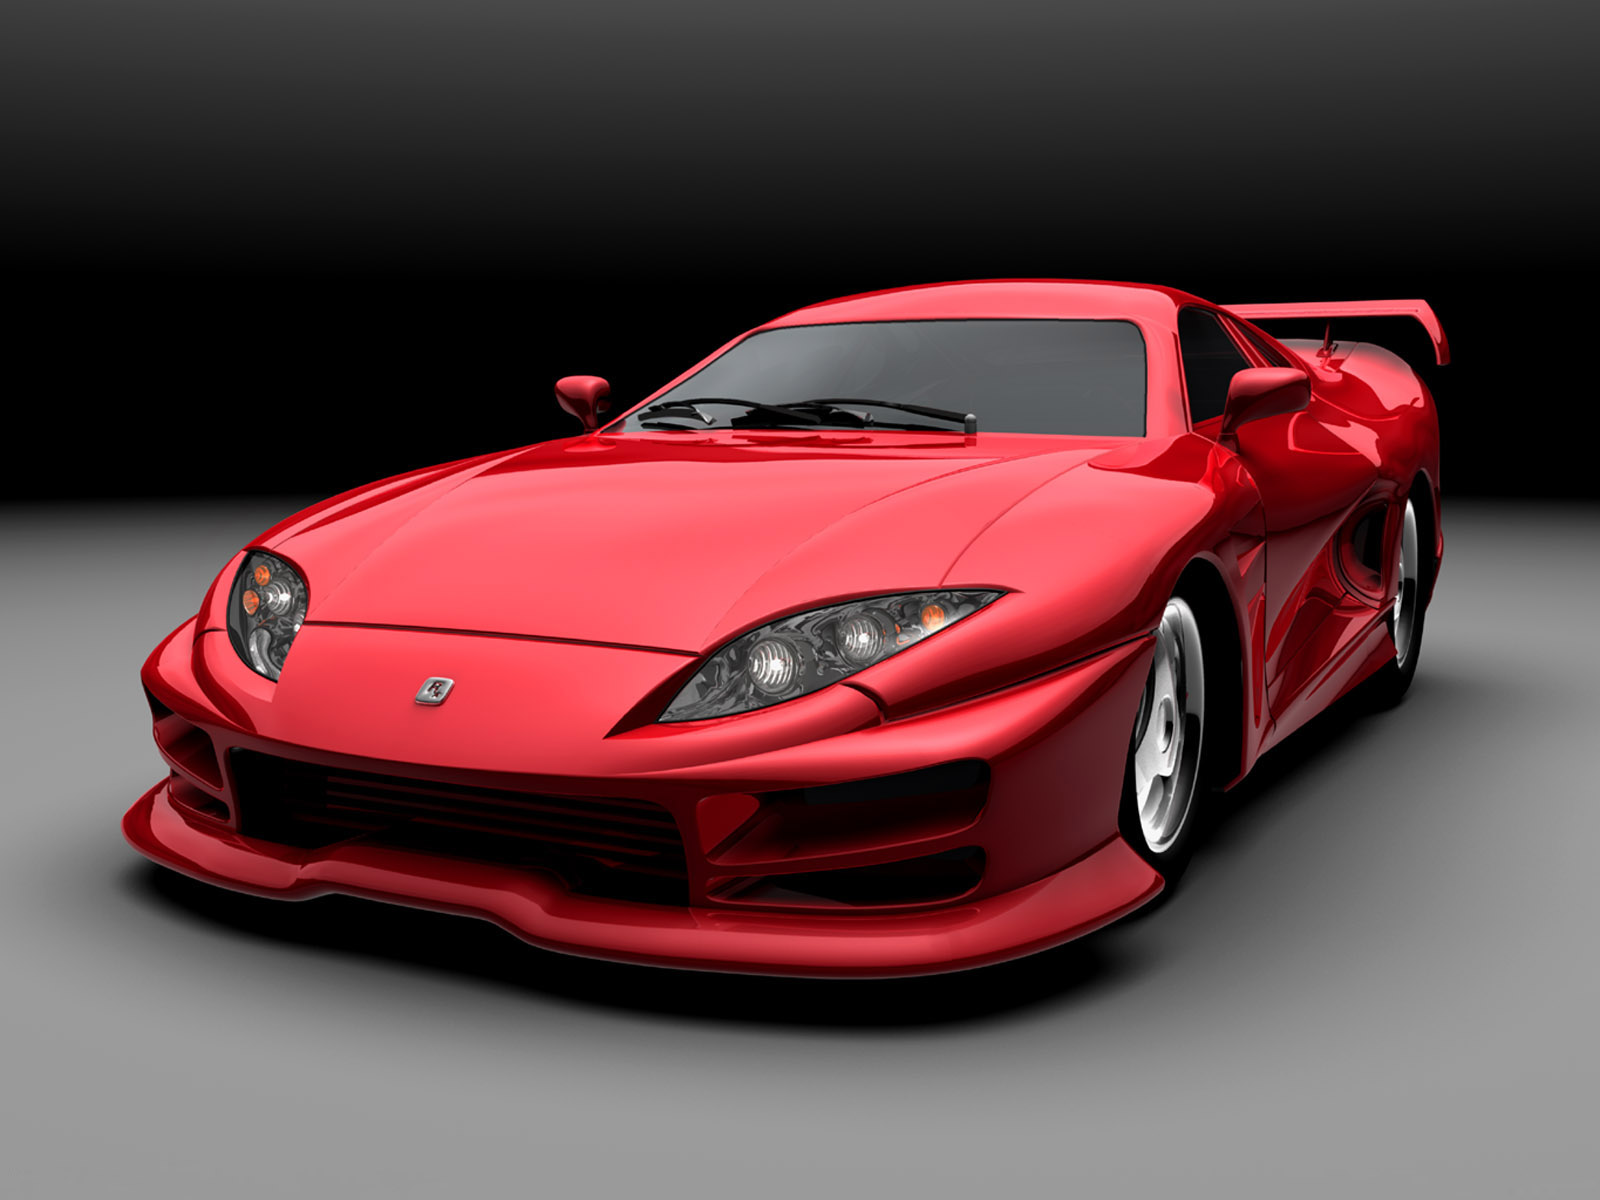 Cool Sports Cars Ferrari: Ferrari Sports Cars Wallpapers